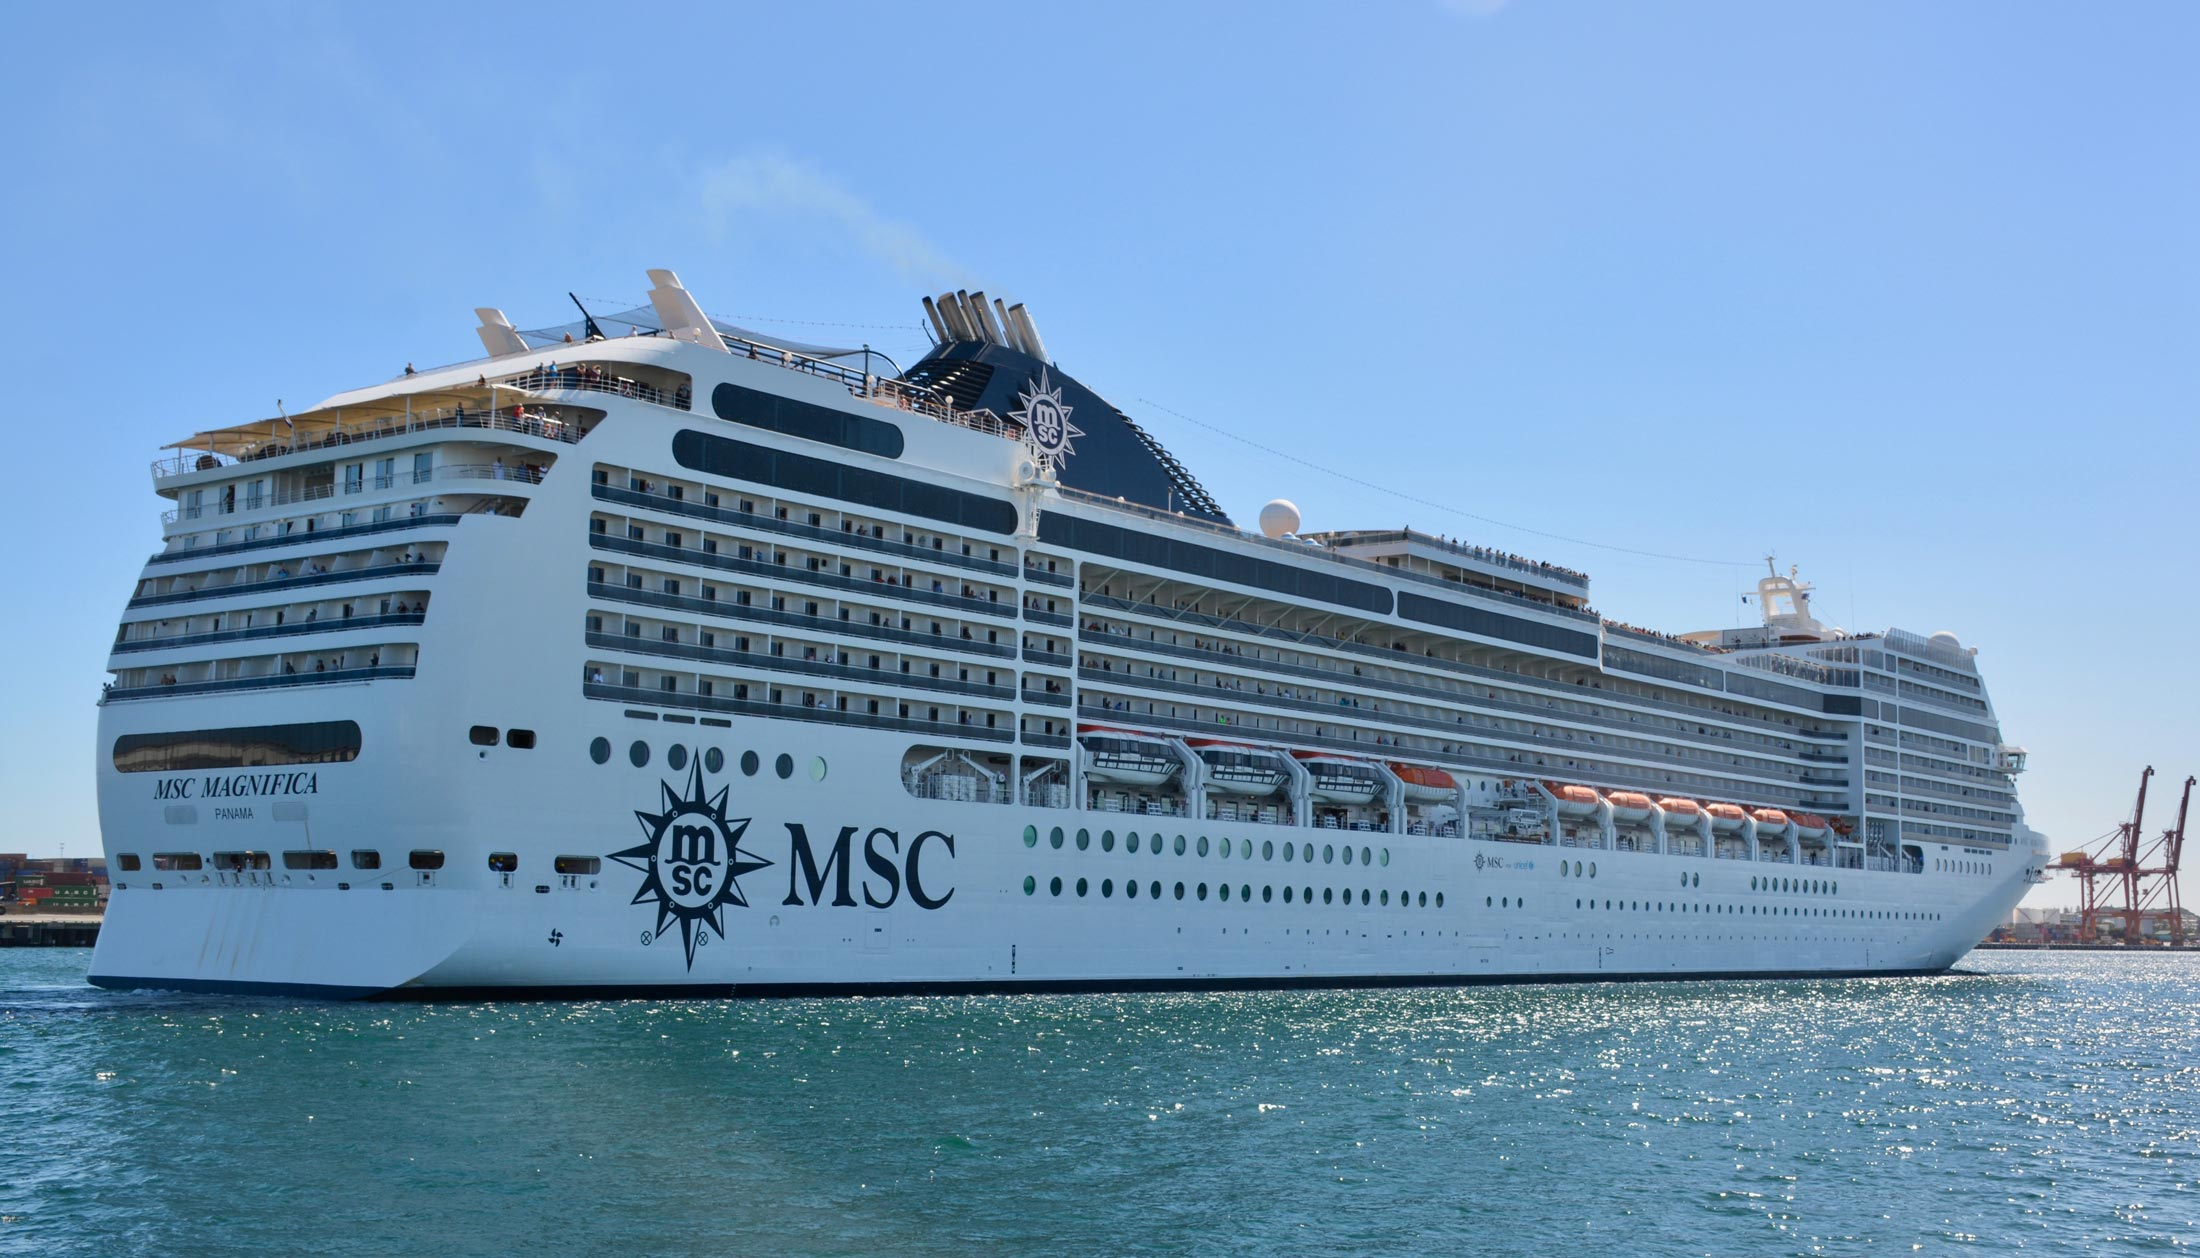 MSC-Magnifica-fremantle-shipping-news